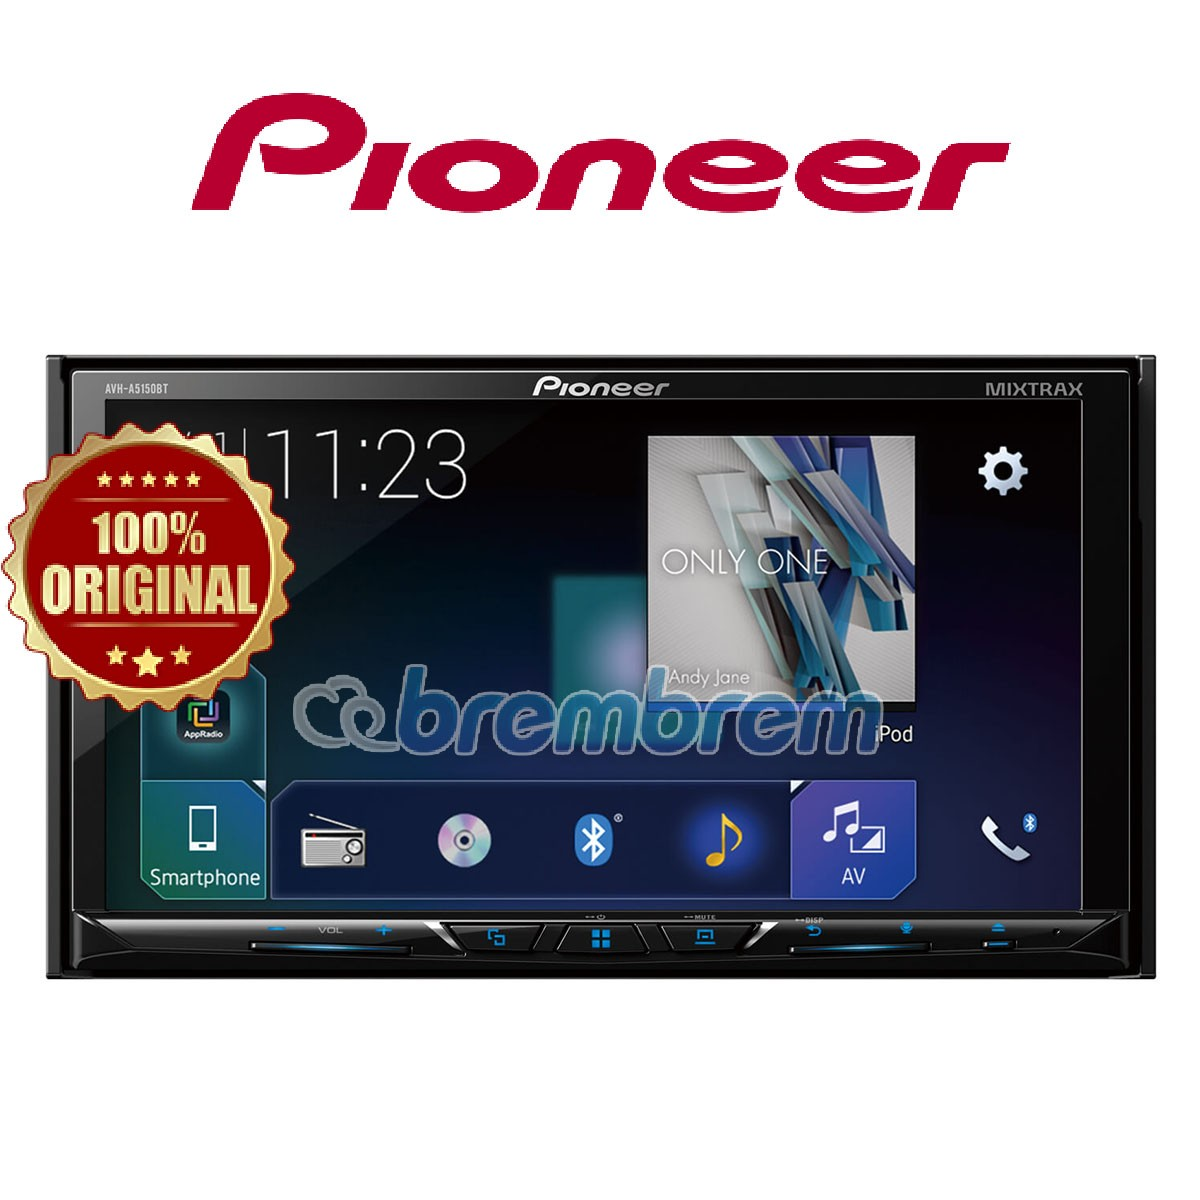 PIONEER AVH-A5150BT - HEAD UNIT DOUBLE DIN